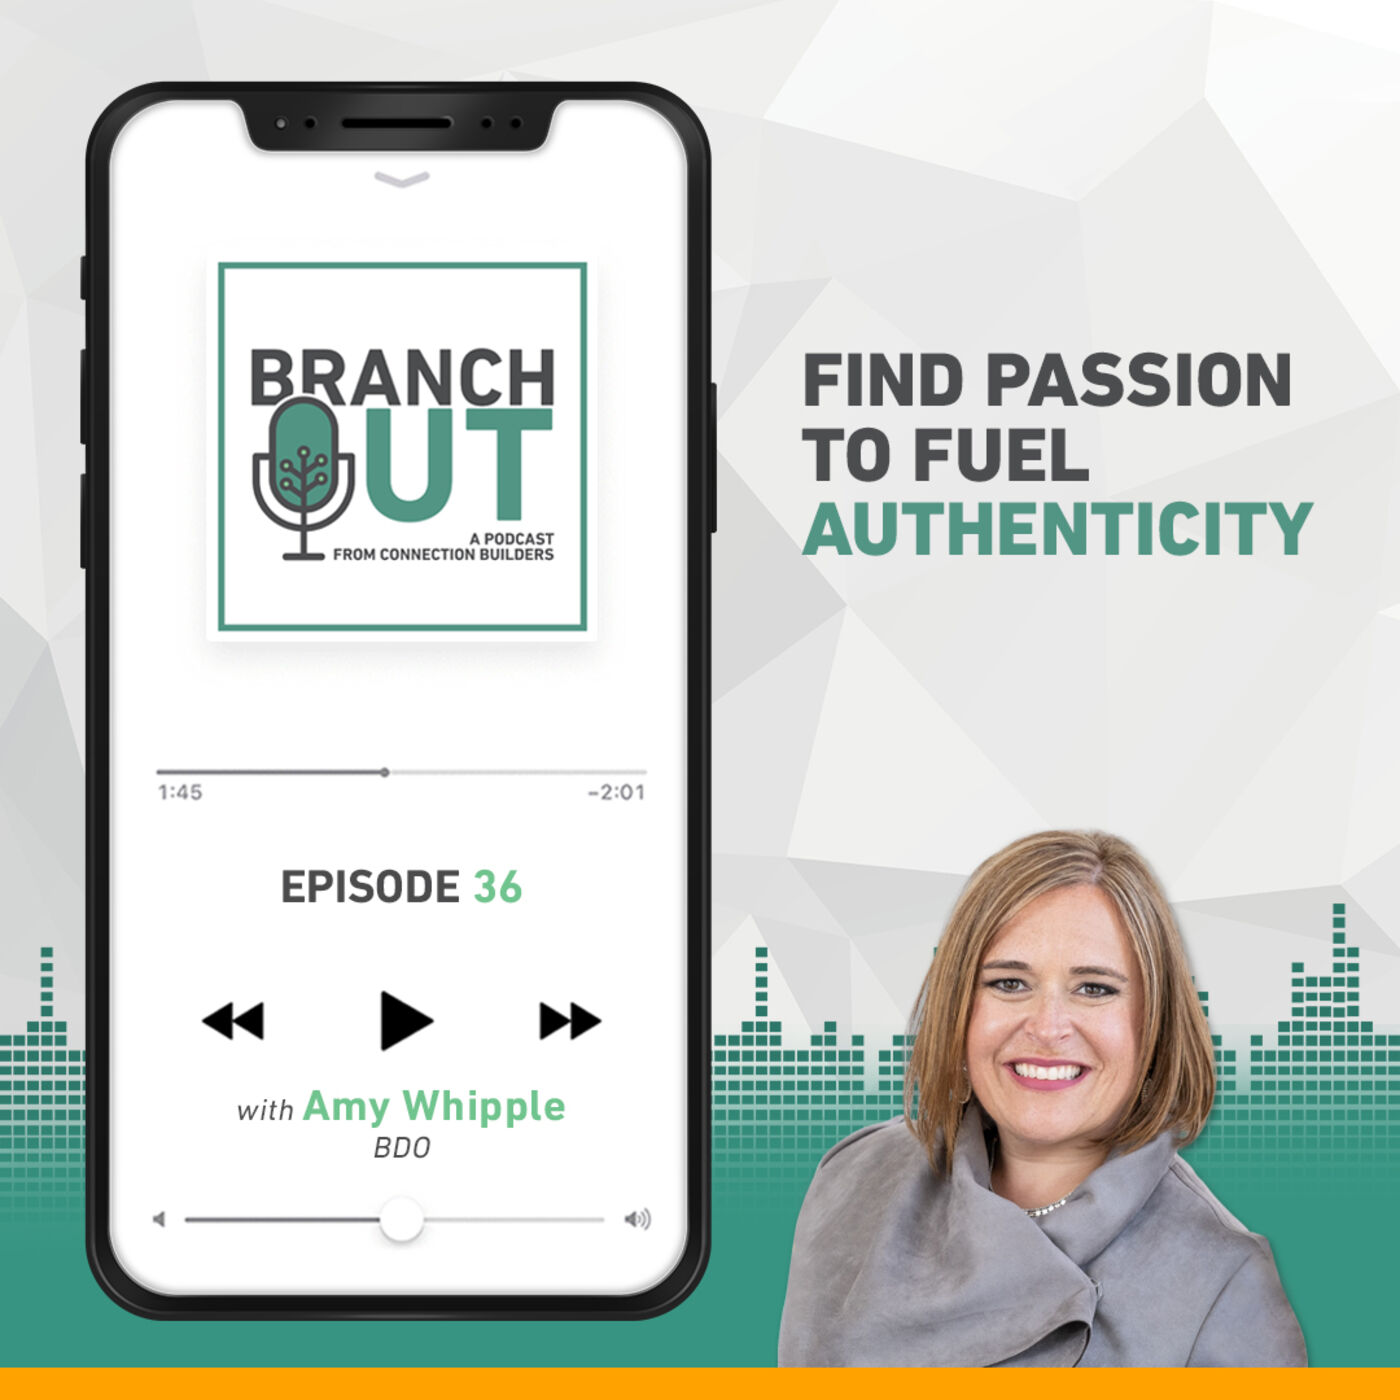 Find Passion to Fuel Authenticity – Amy Whipple